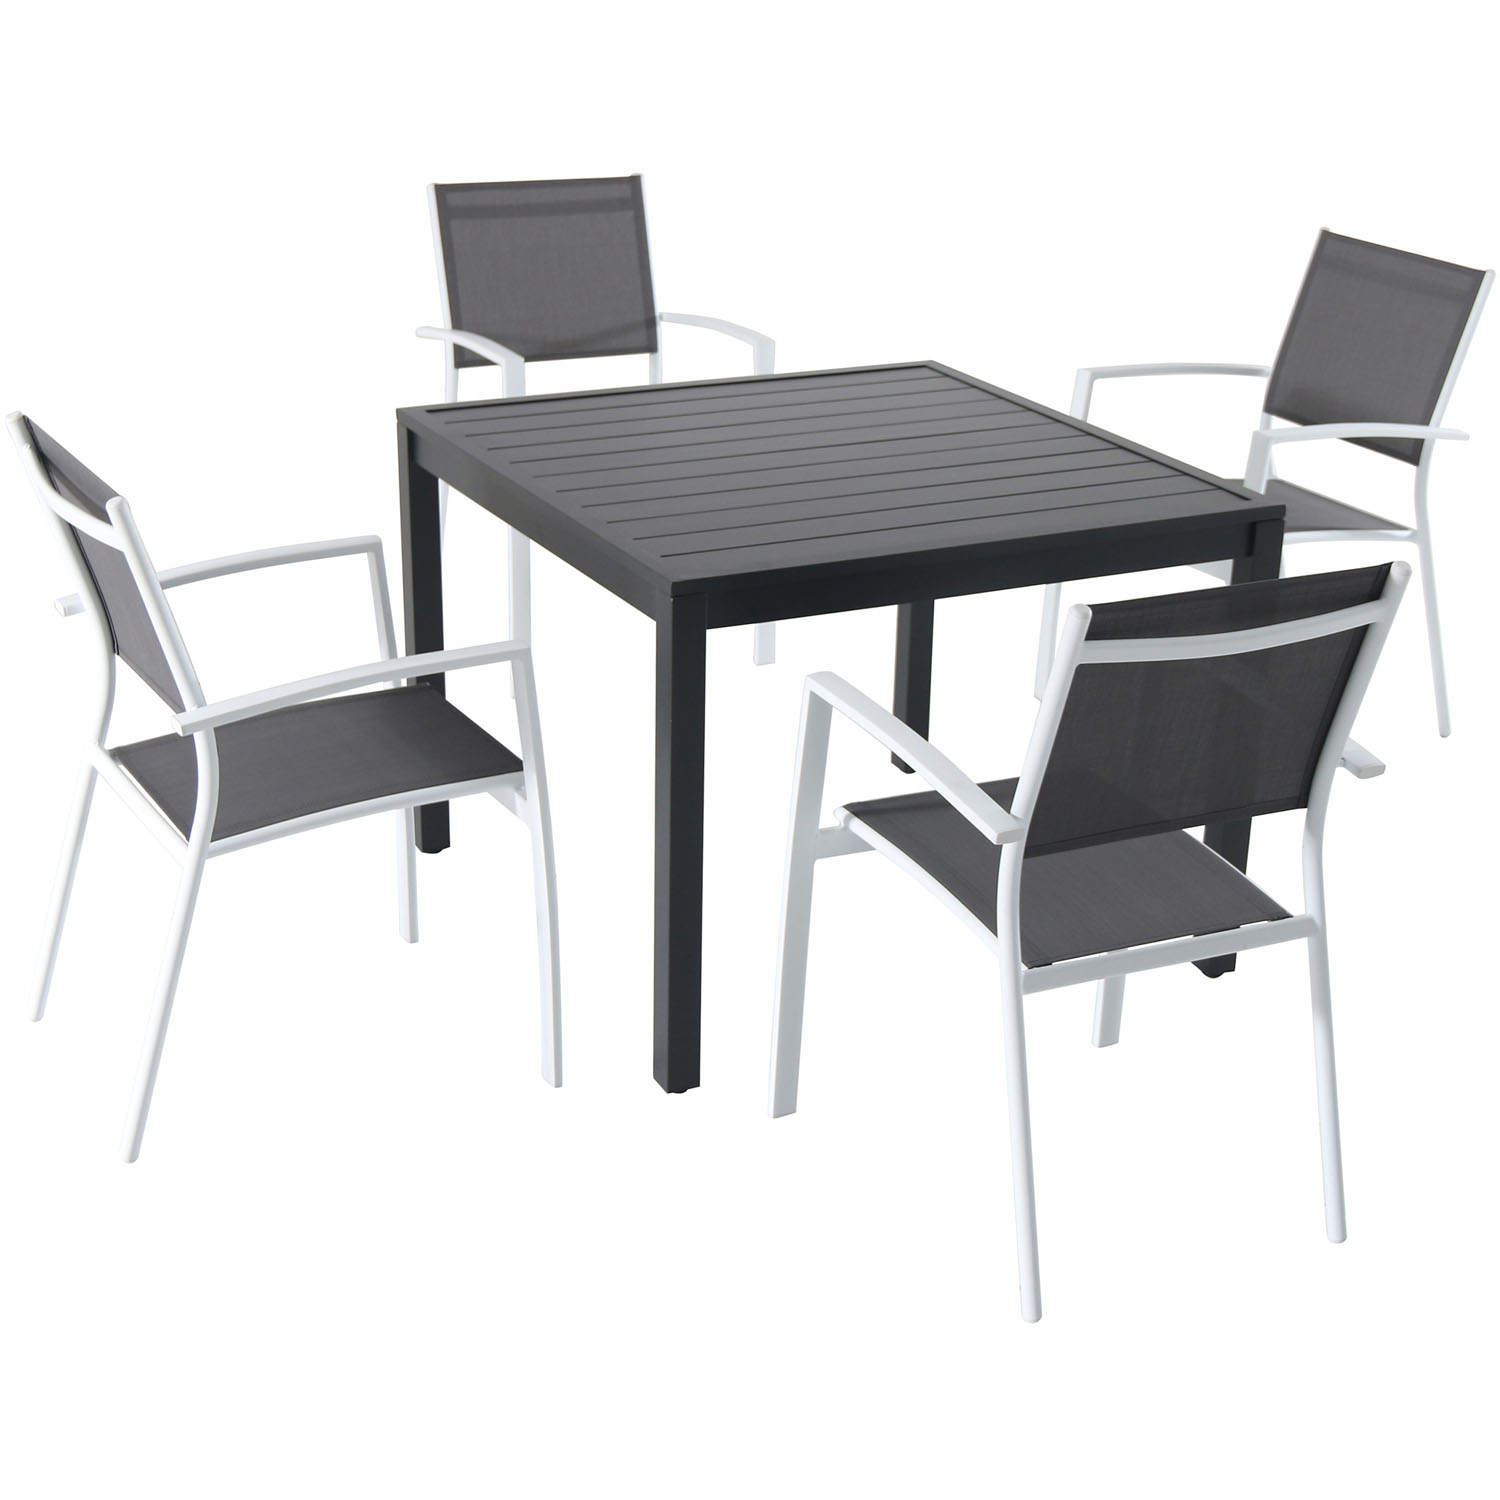 "Hanover Naples 5-Piece Outdoor Dining Set with 4 Sling Arm Chairs and a 38"" Square Dining Table"